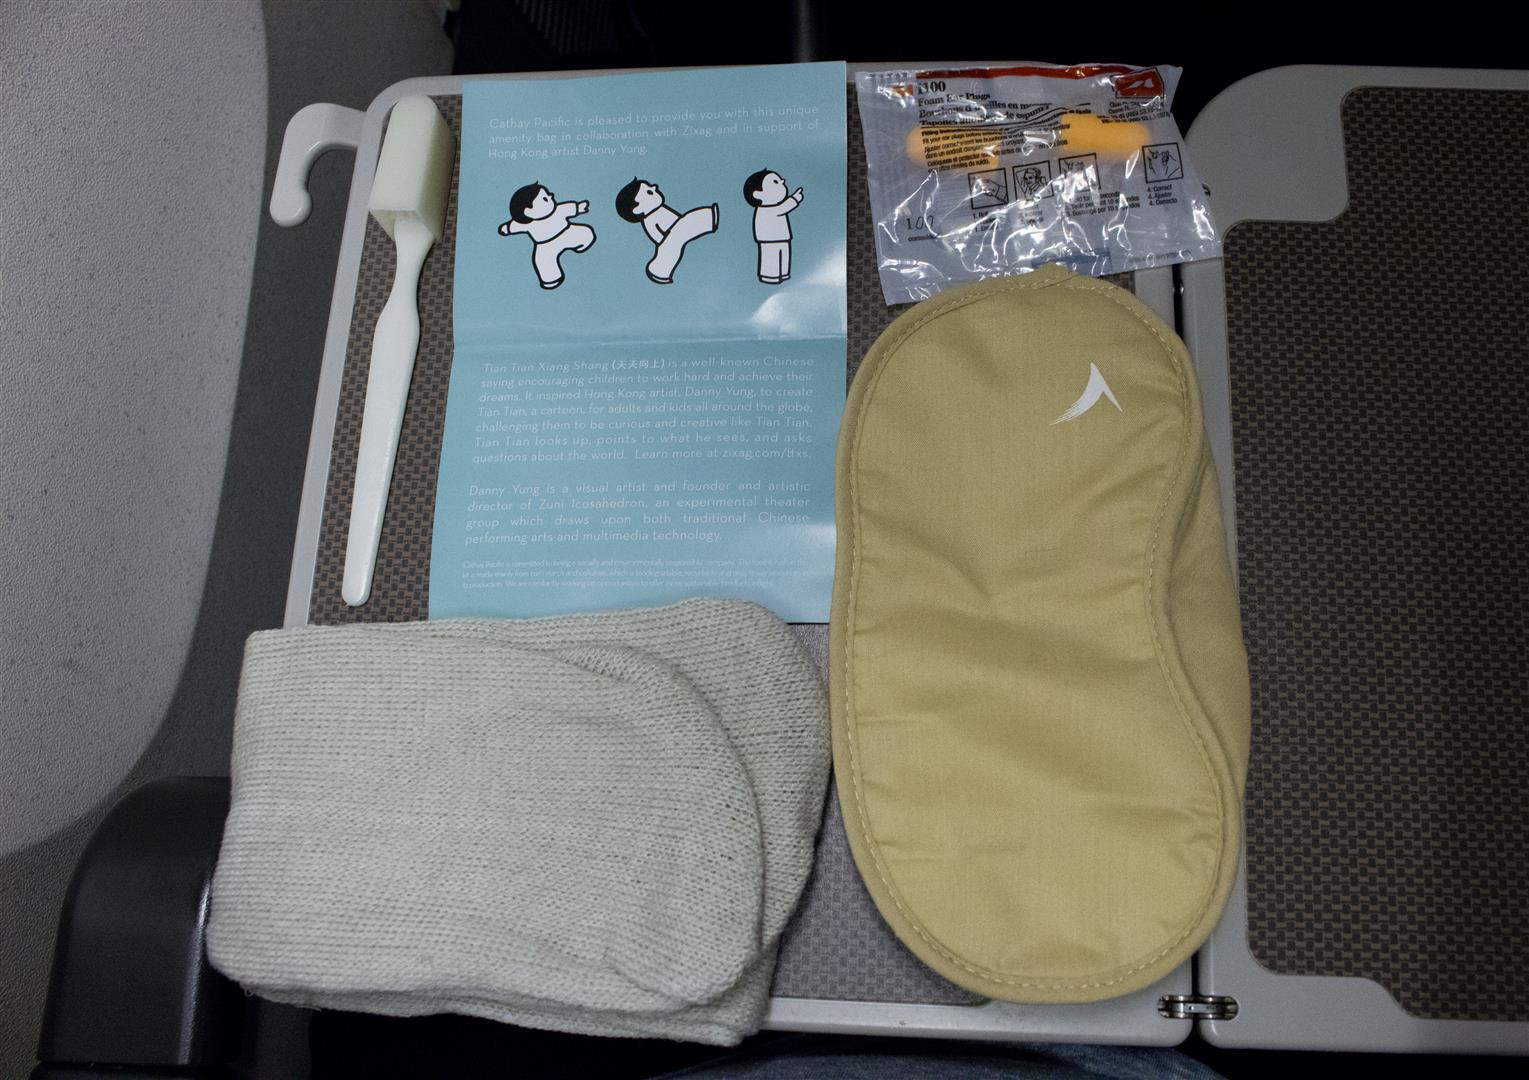 The Cathay Pacific Premium Economy Amenity Kit